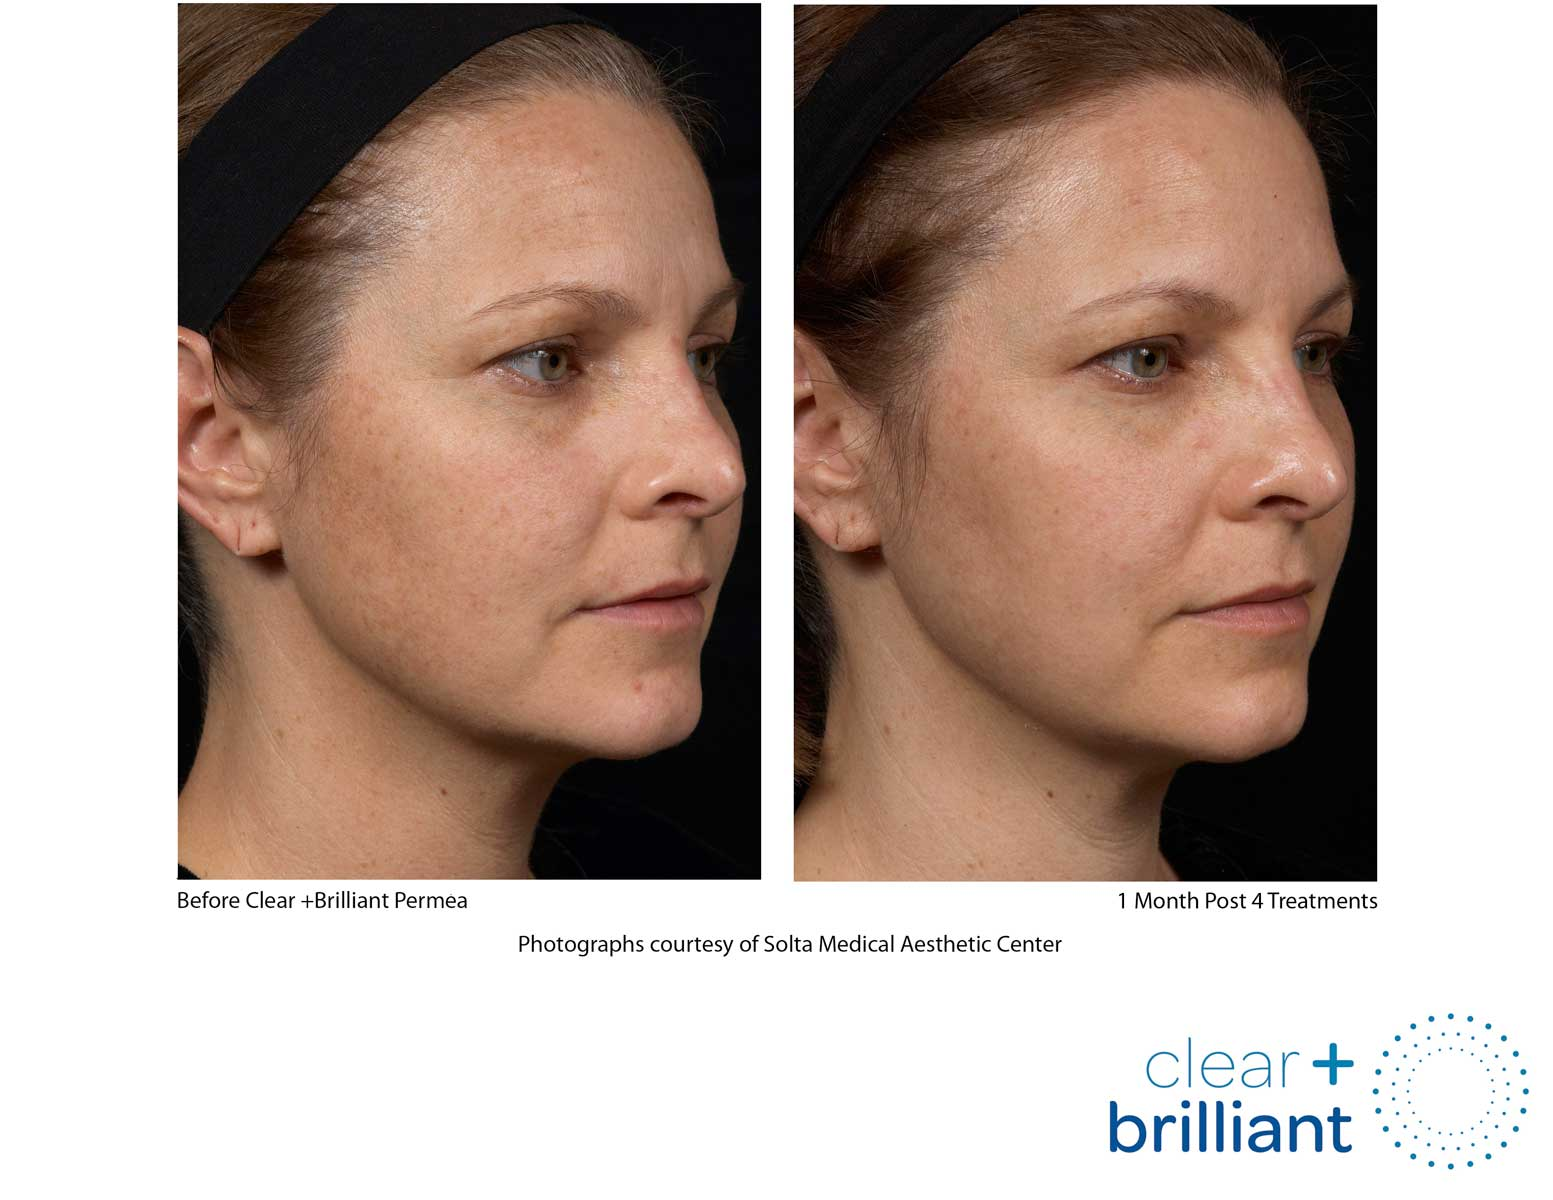 before and after photo of a female patient's face with a reduced sunspots after a customized laser facials